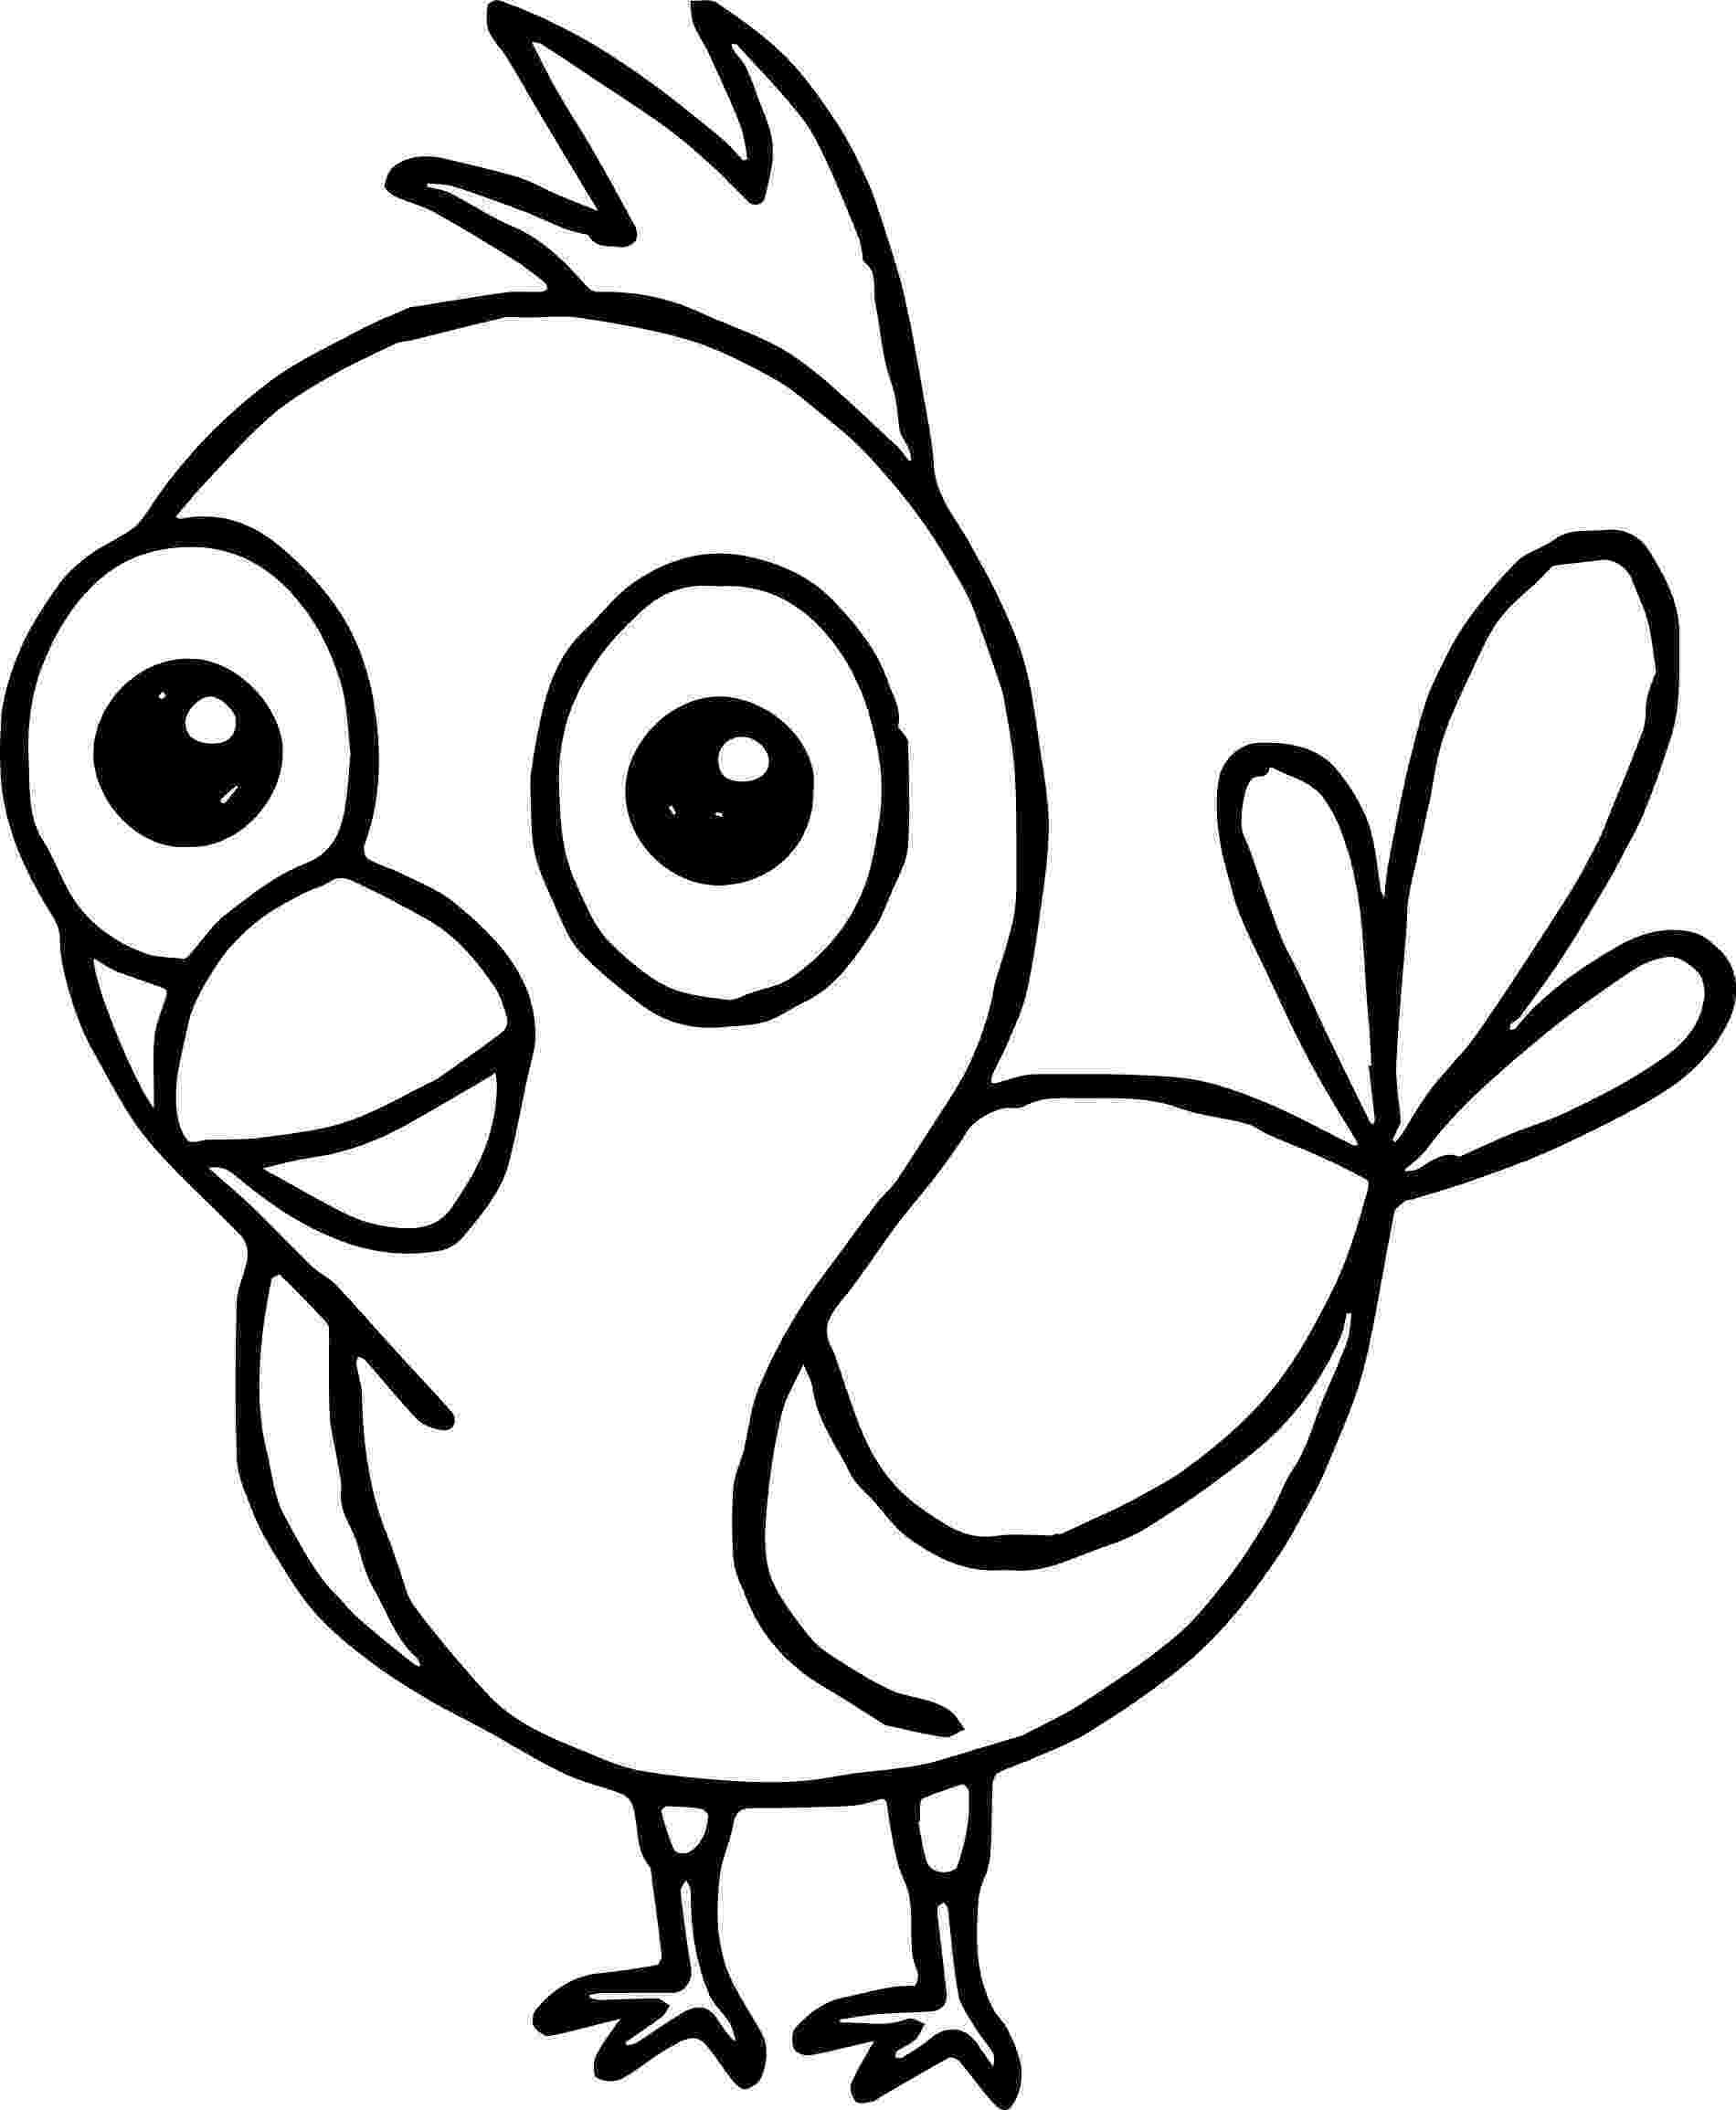 bird coloring images line art coloring page bird with blossoms the bird coloring images